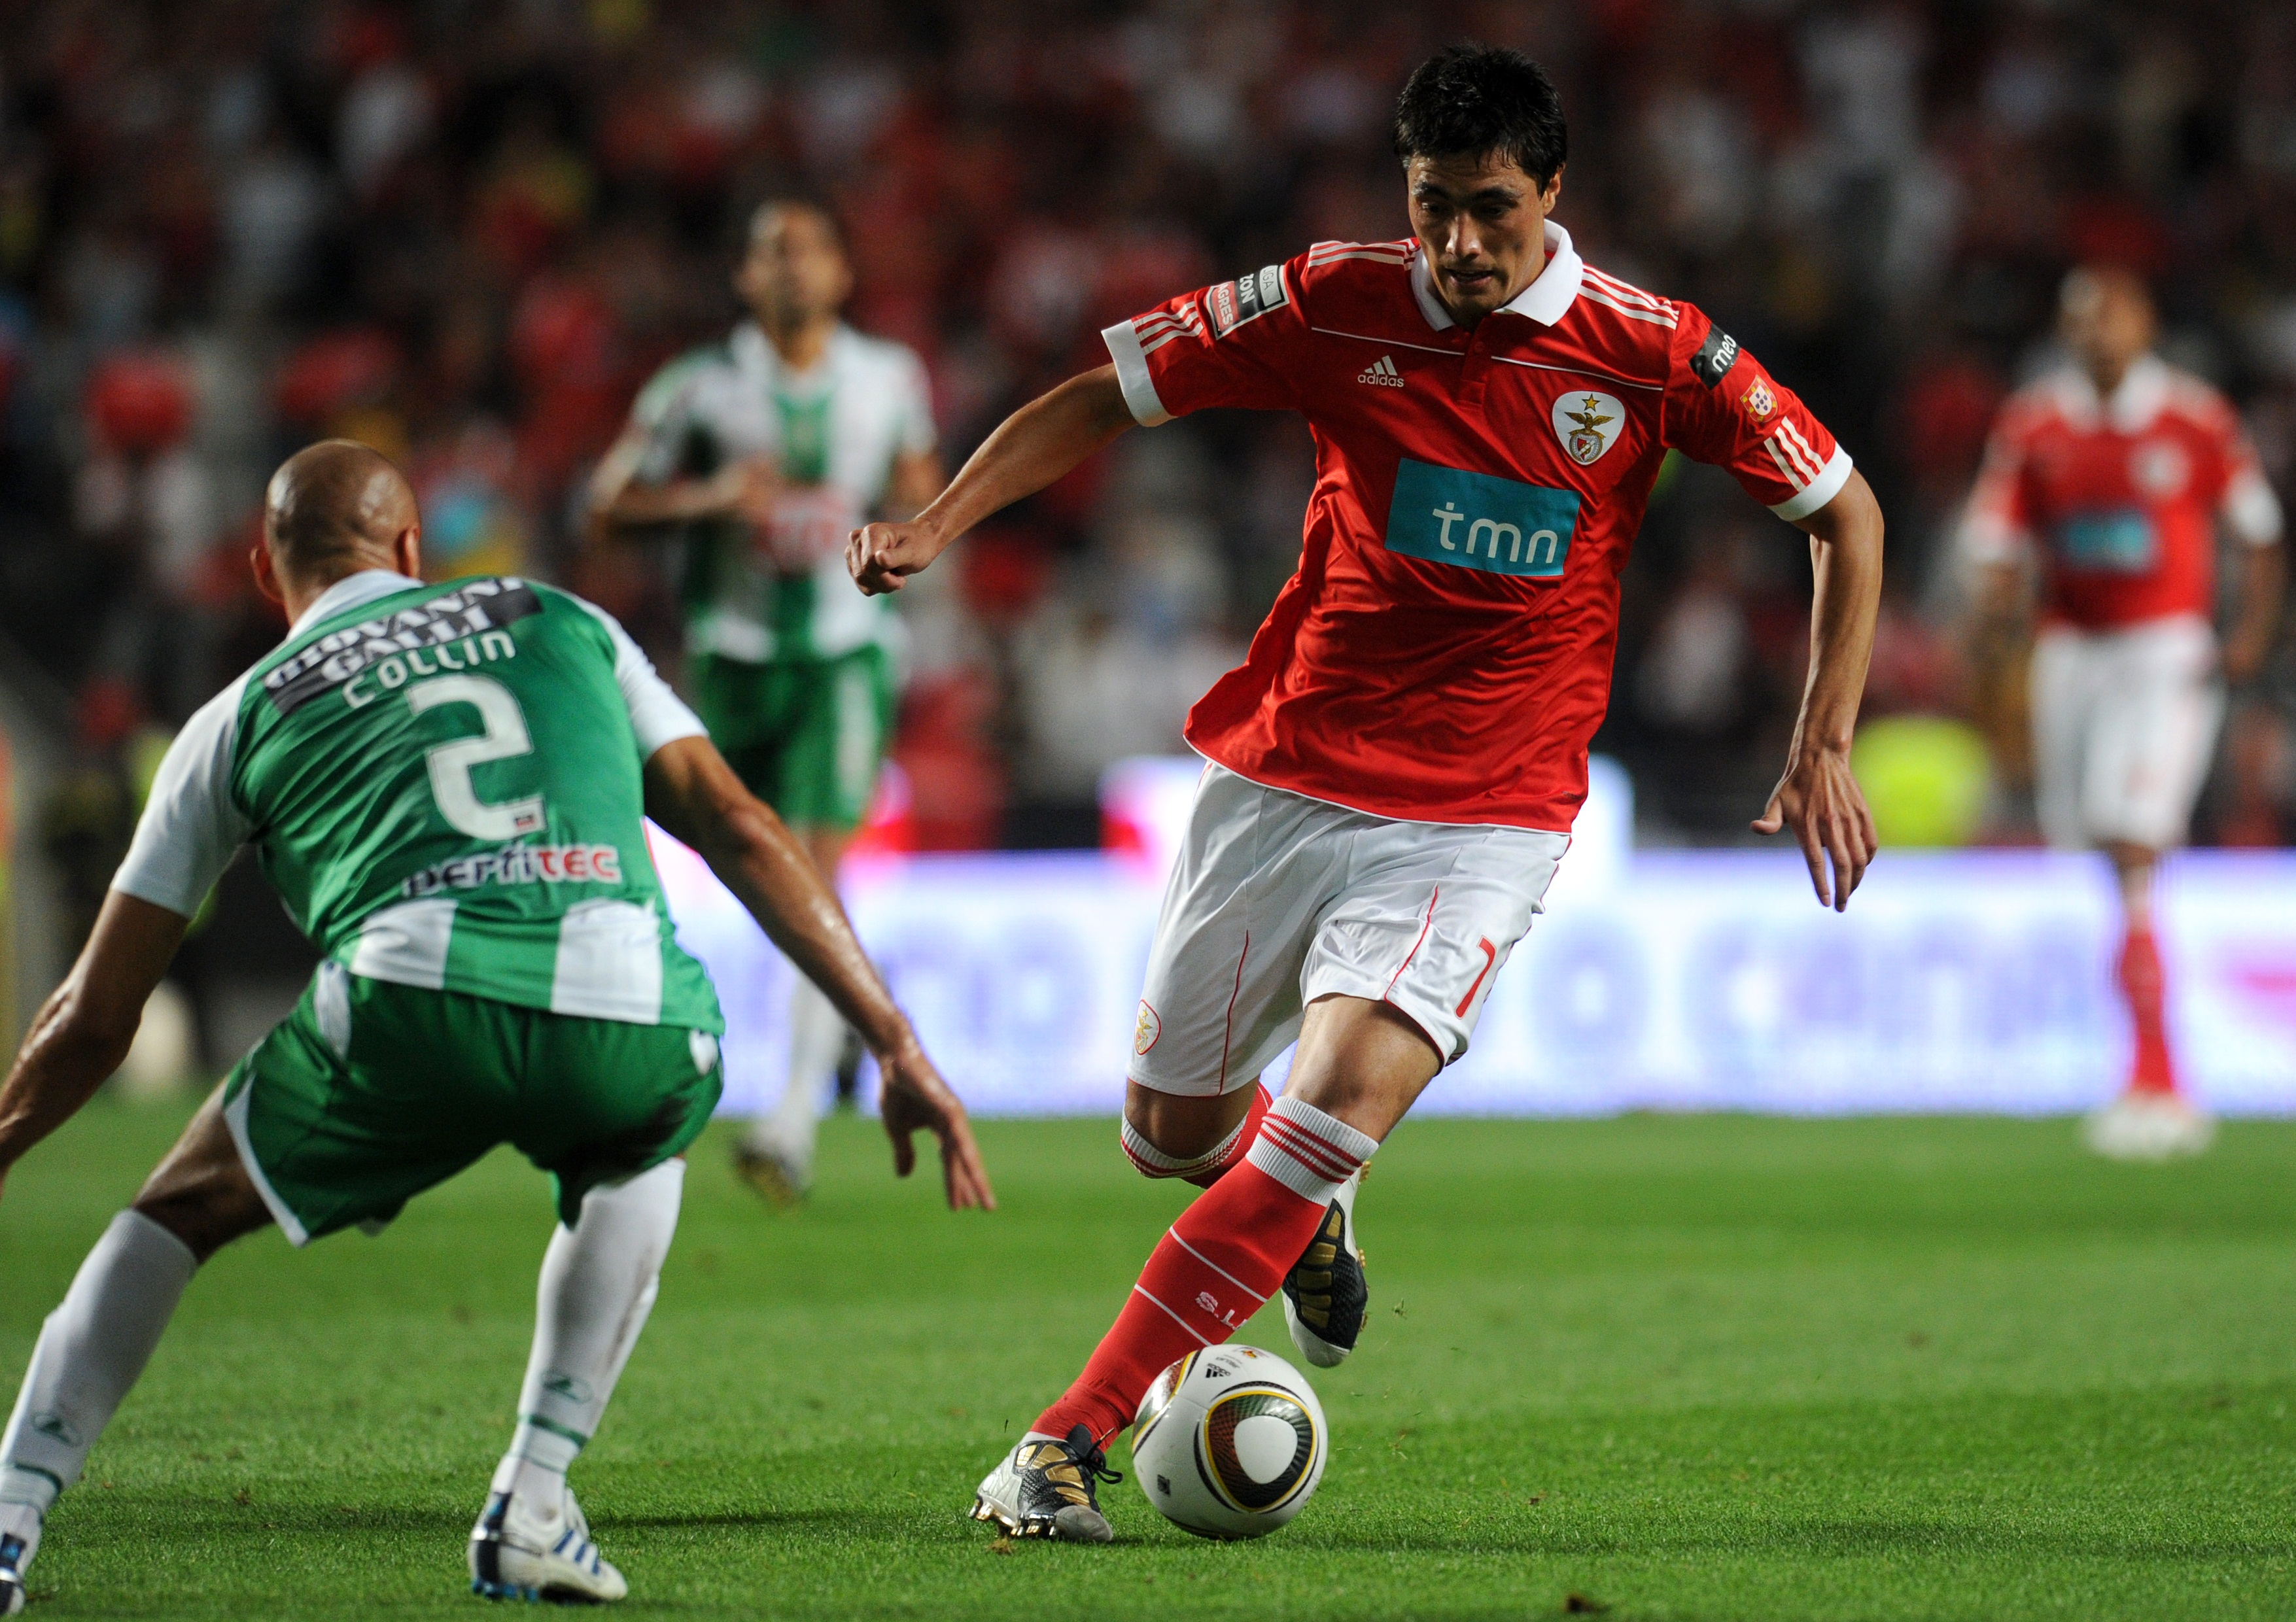 LISBON, PORTUGAL - AUGUST 28:  Oscar Cardozo of Benfica competes with Aurelien Collin of Vitoria Setubal during the Portuguese Liga match between Benfica and Vitoria Setubal at Luz Stadium on August 28, 2010 in Lisbon, Portugal.  (Photo by Patricia de Mel